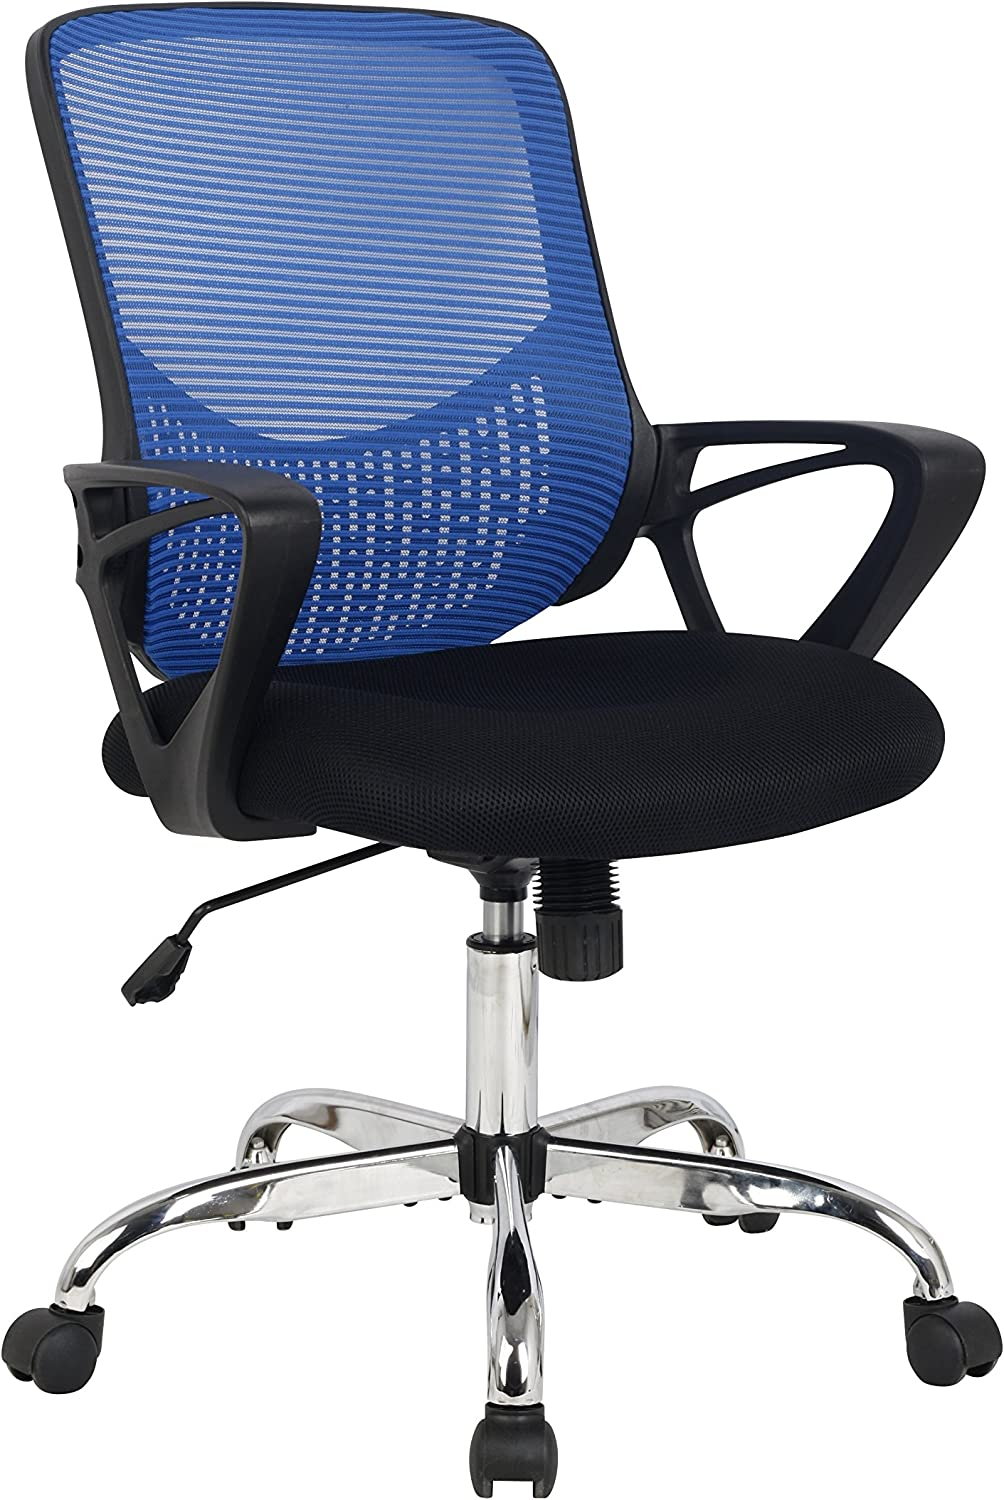 Hodedah Mid Back Mesh Office Chair with Adjustable Height, bluee